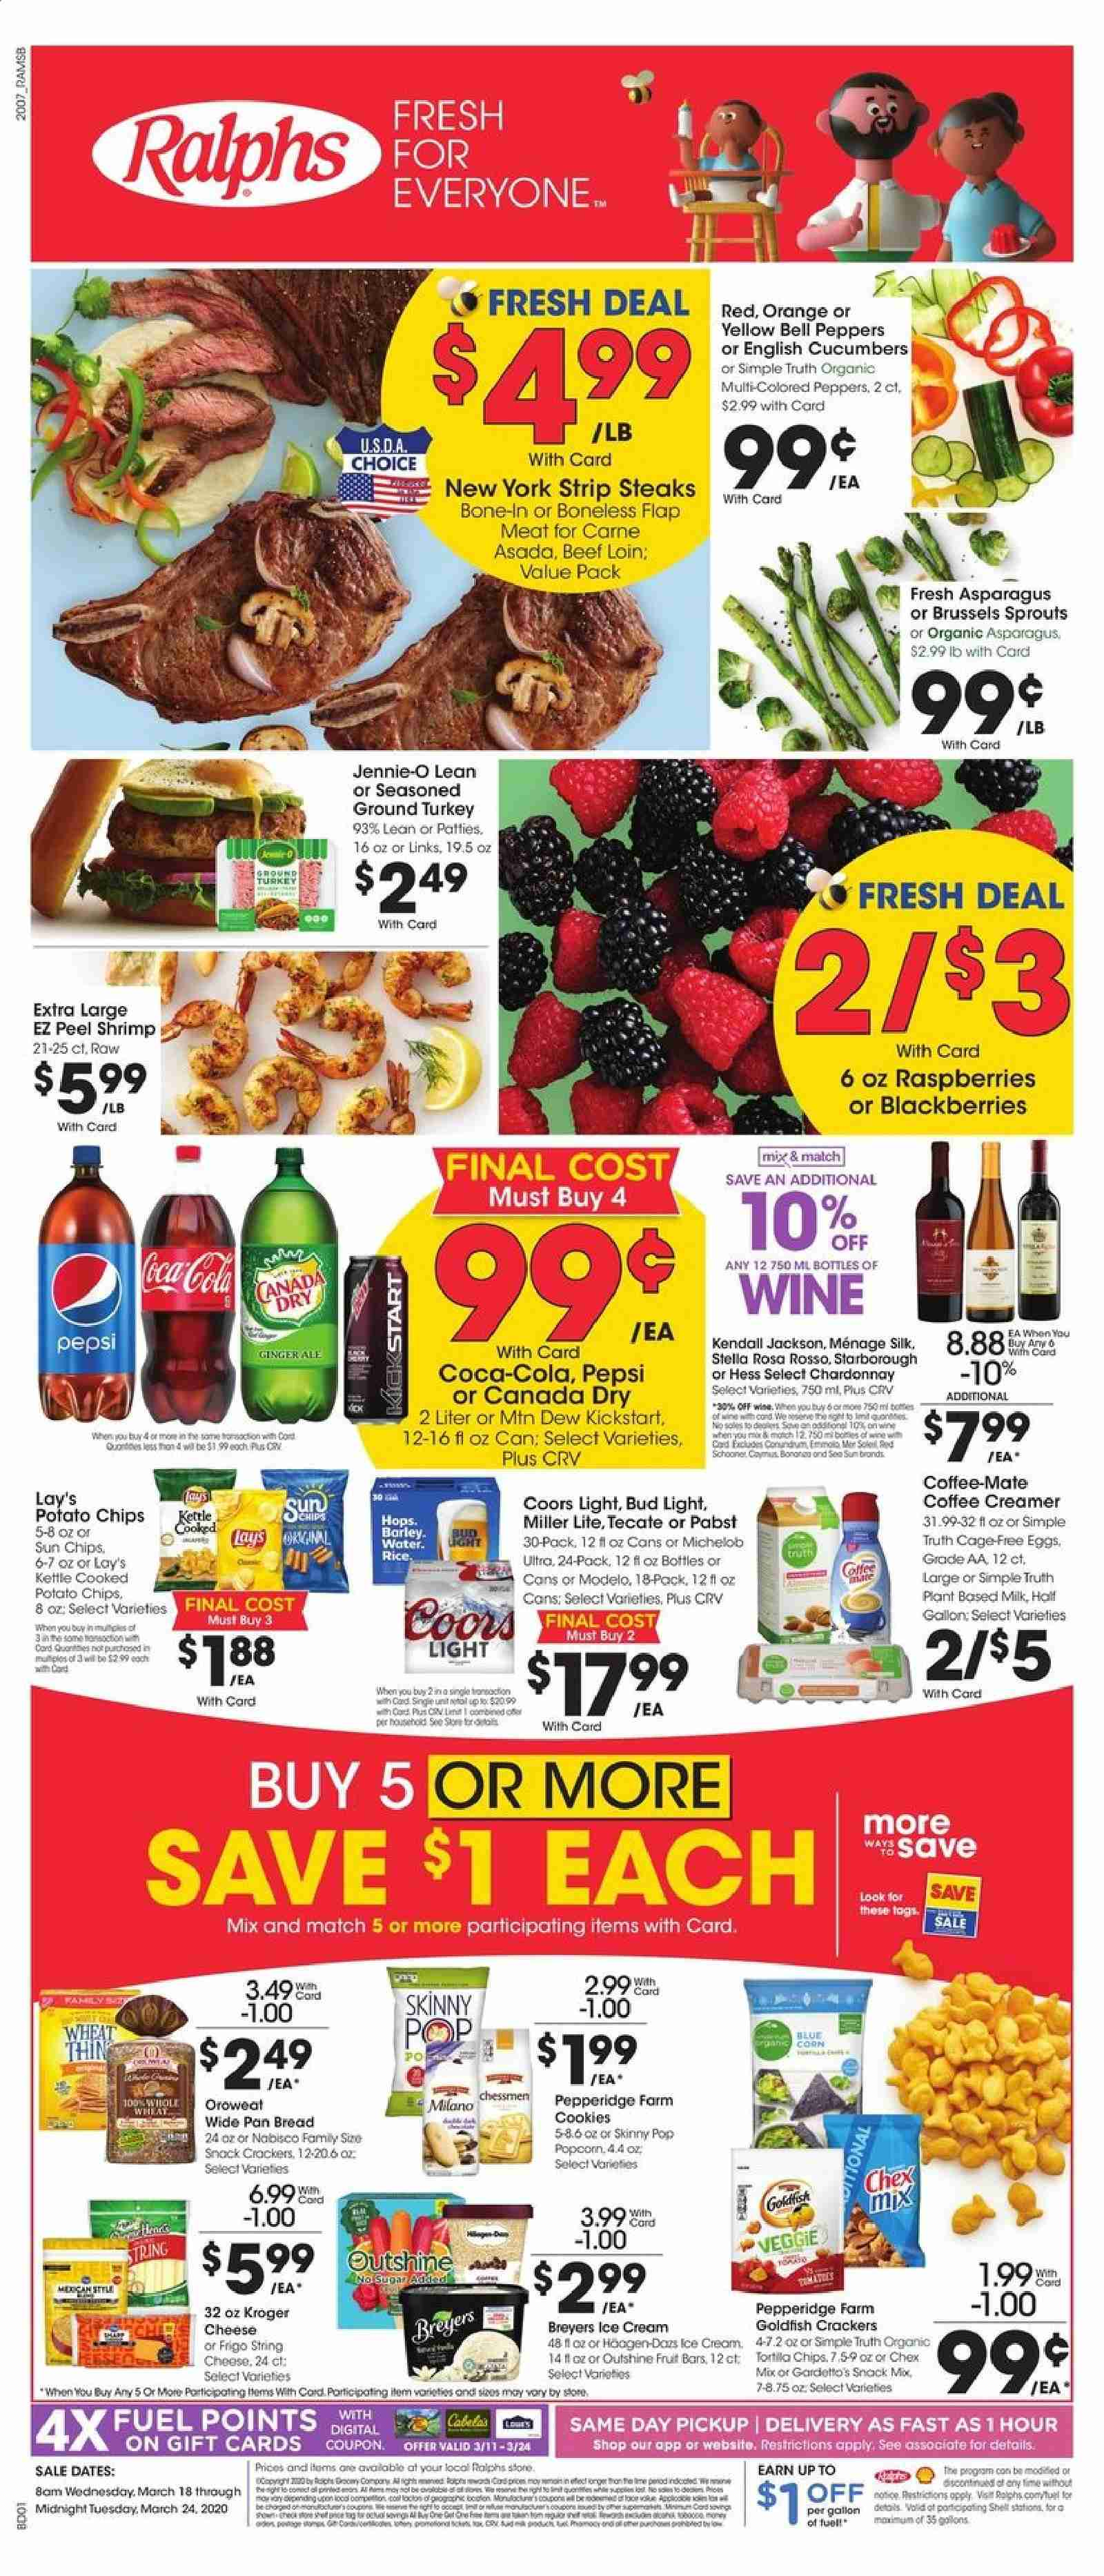 Ralphs Flyer  - 03.18.2020 - 03.24.2020. Page 1.